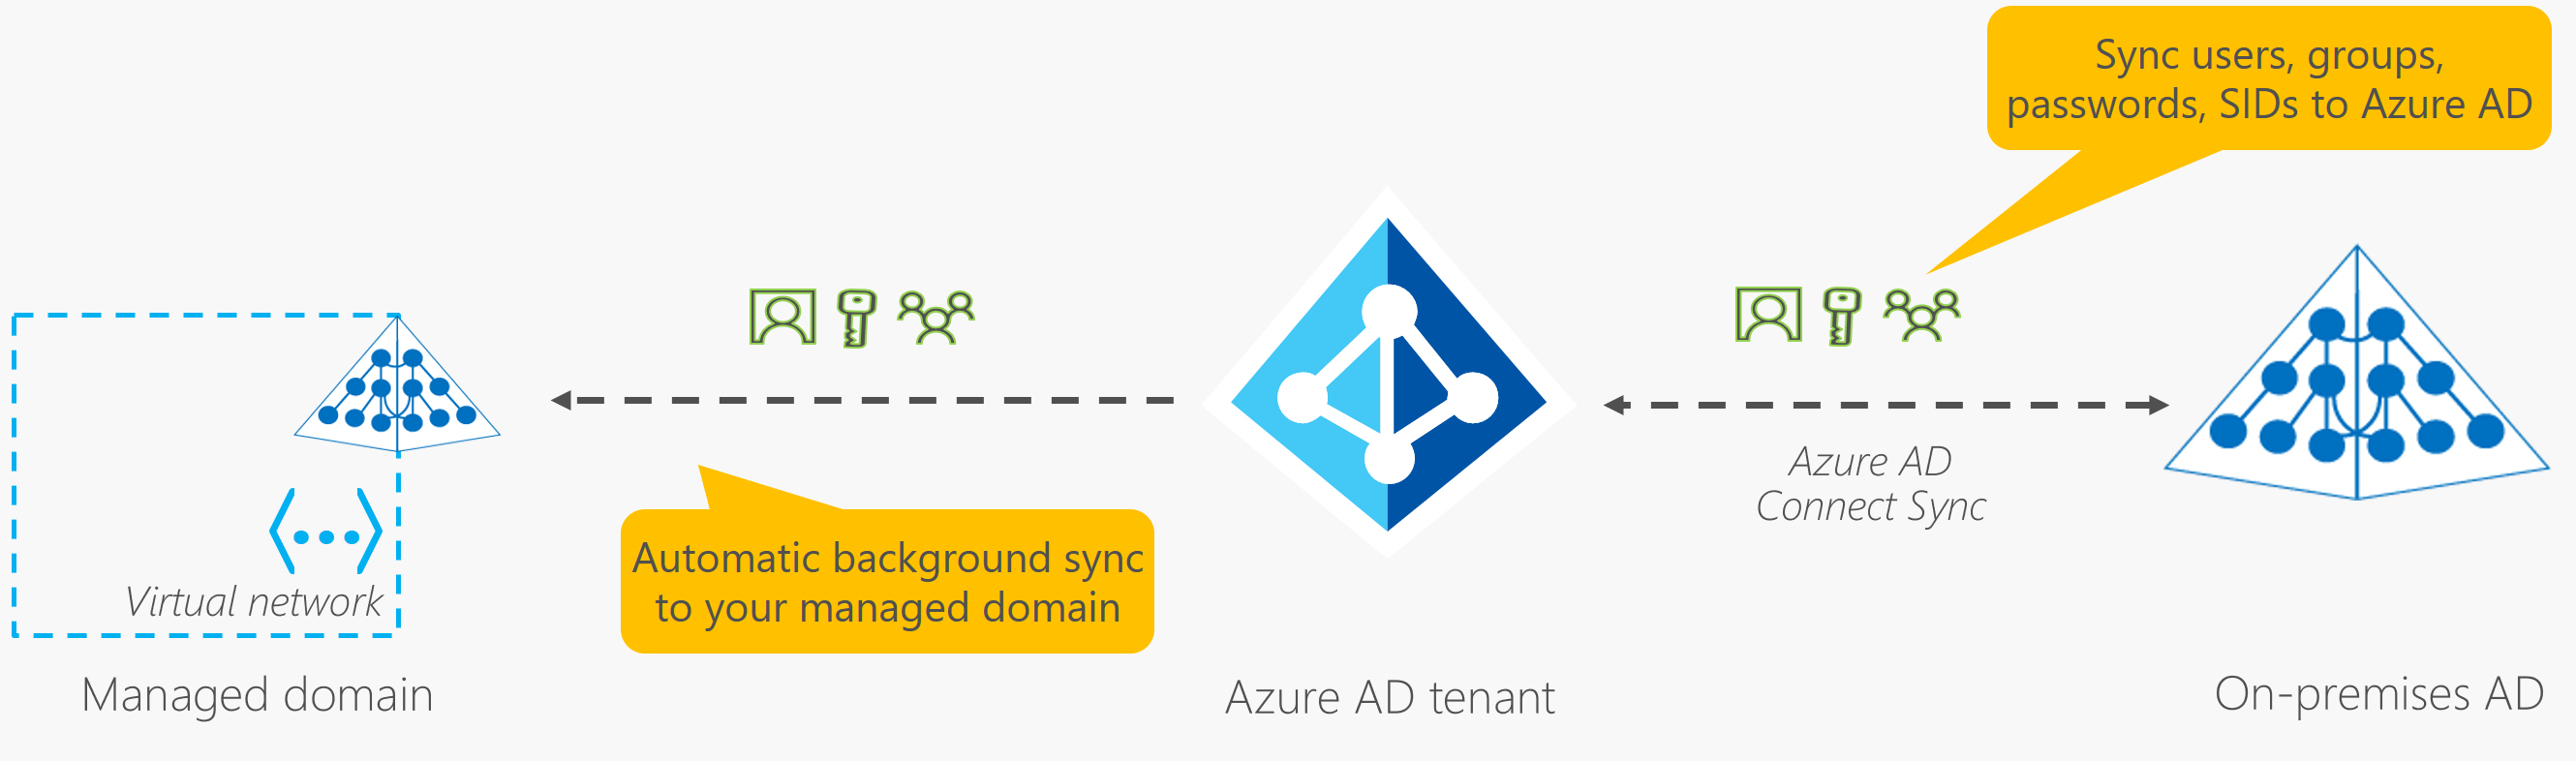 Synchronization overview for an Azure AD Domain Services managed domain